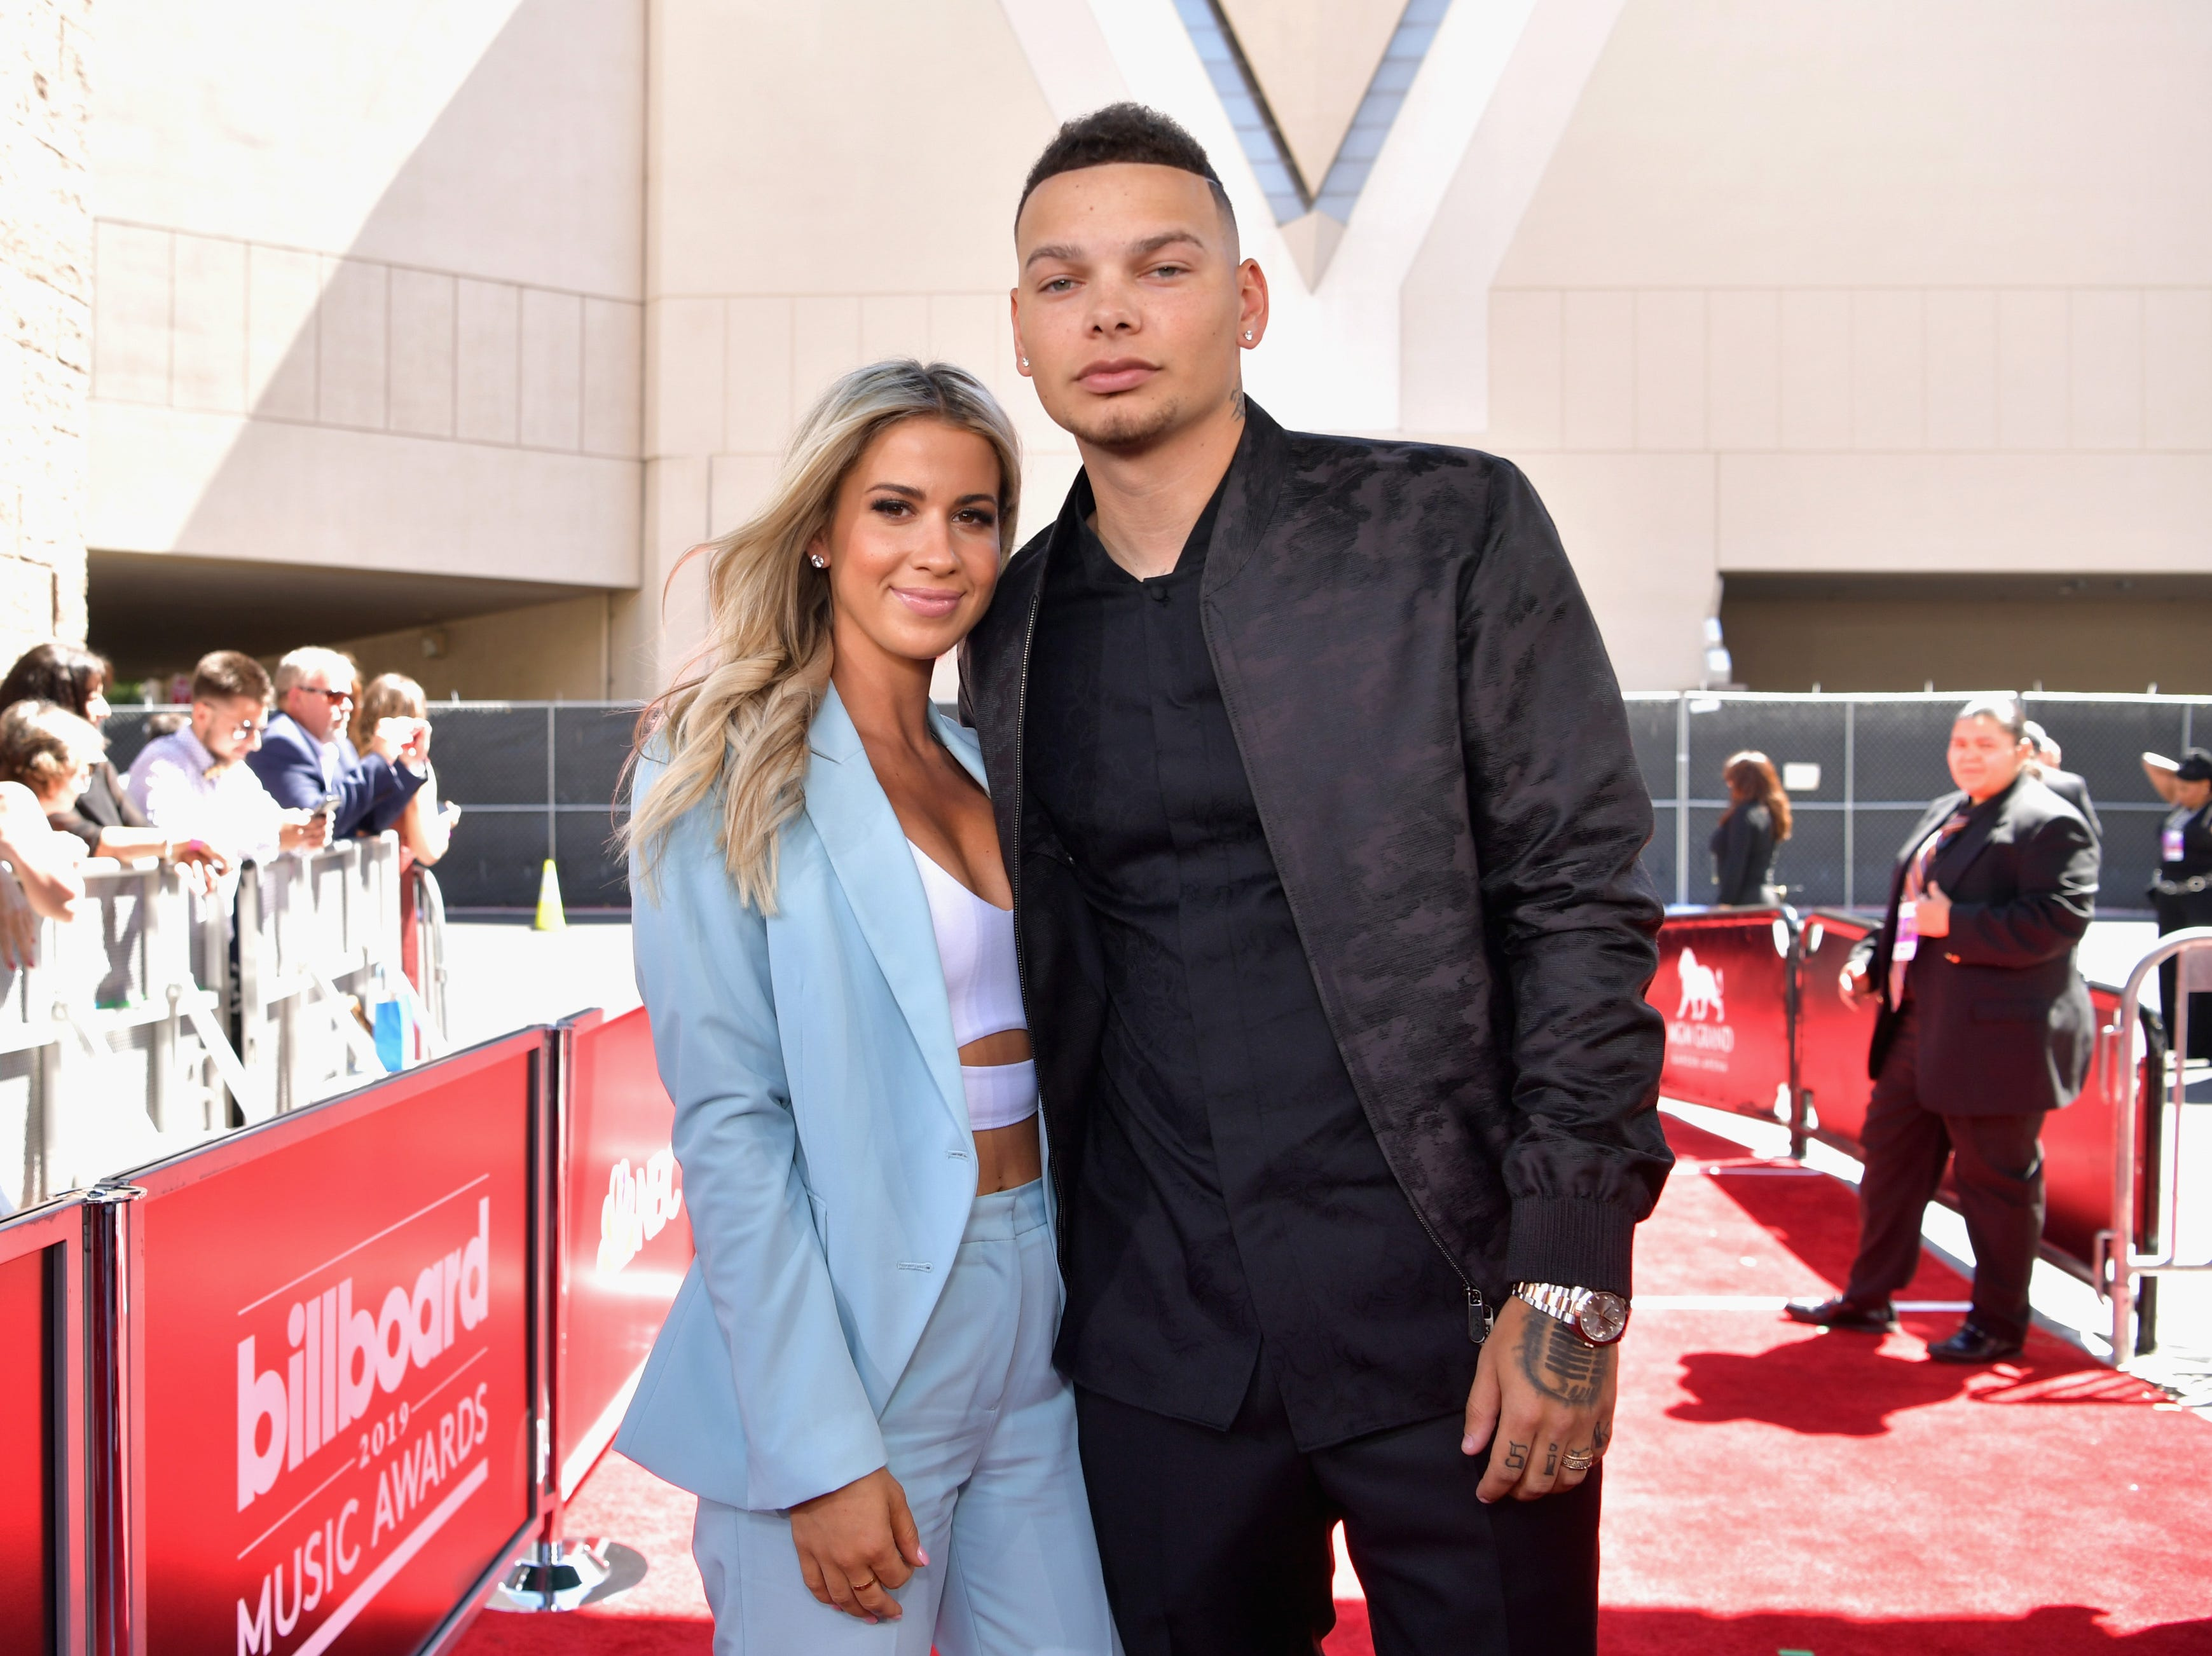 (L-R) Katelyn Jae and Kane Brown attend the 2019 Billboard Music Awards at MGM Grand Garden Arena on May 1, 2019 in Las Vegas, Nevada.